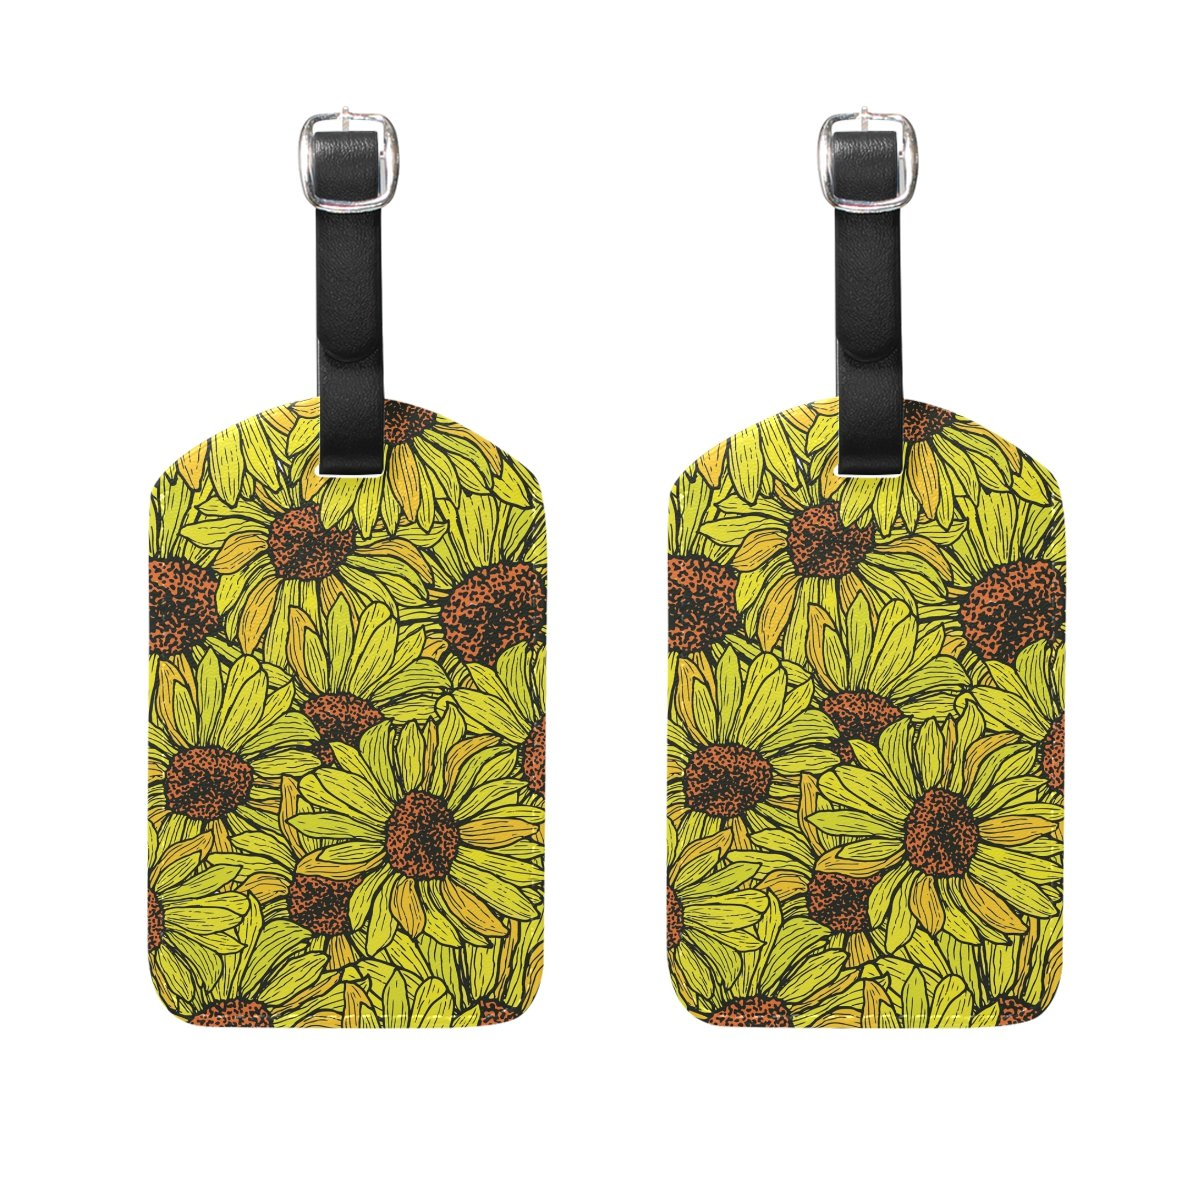 Set of 2 Luggage Tags Watercolor Sunflower Suitcase Labels Travel Accessories